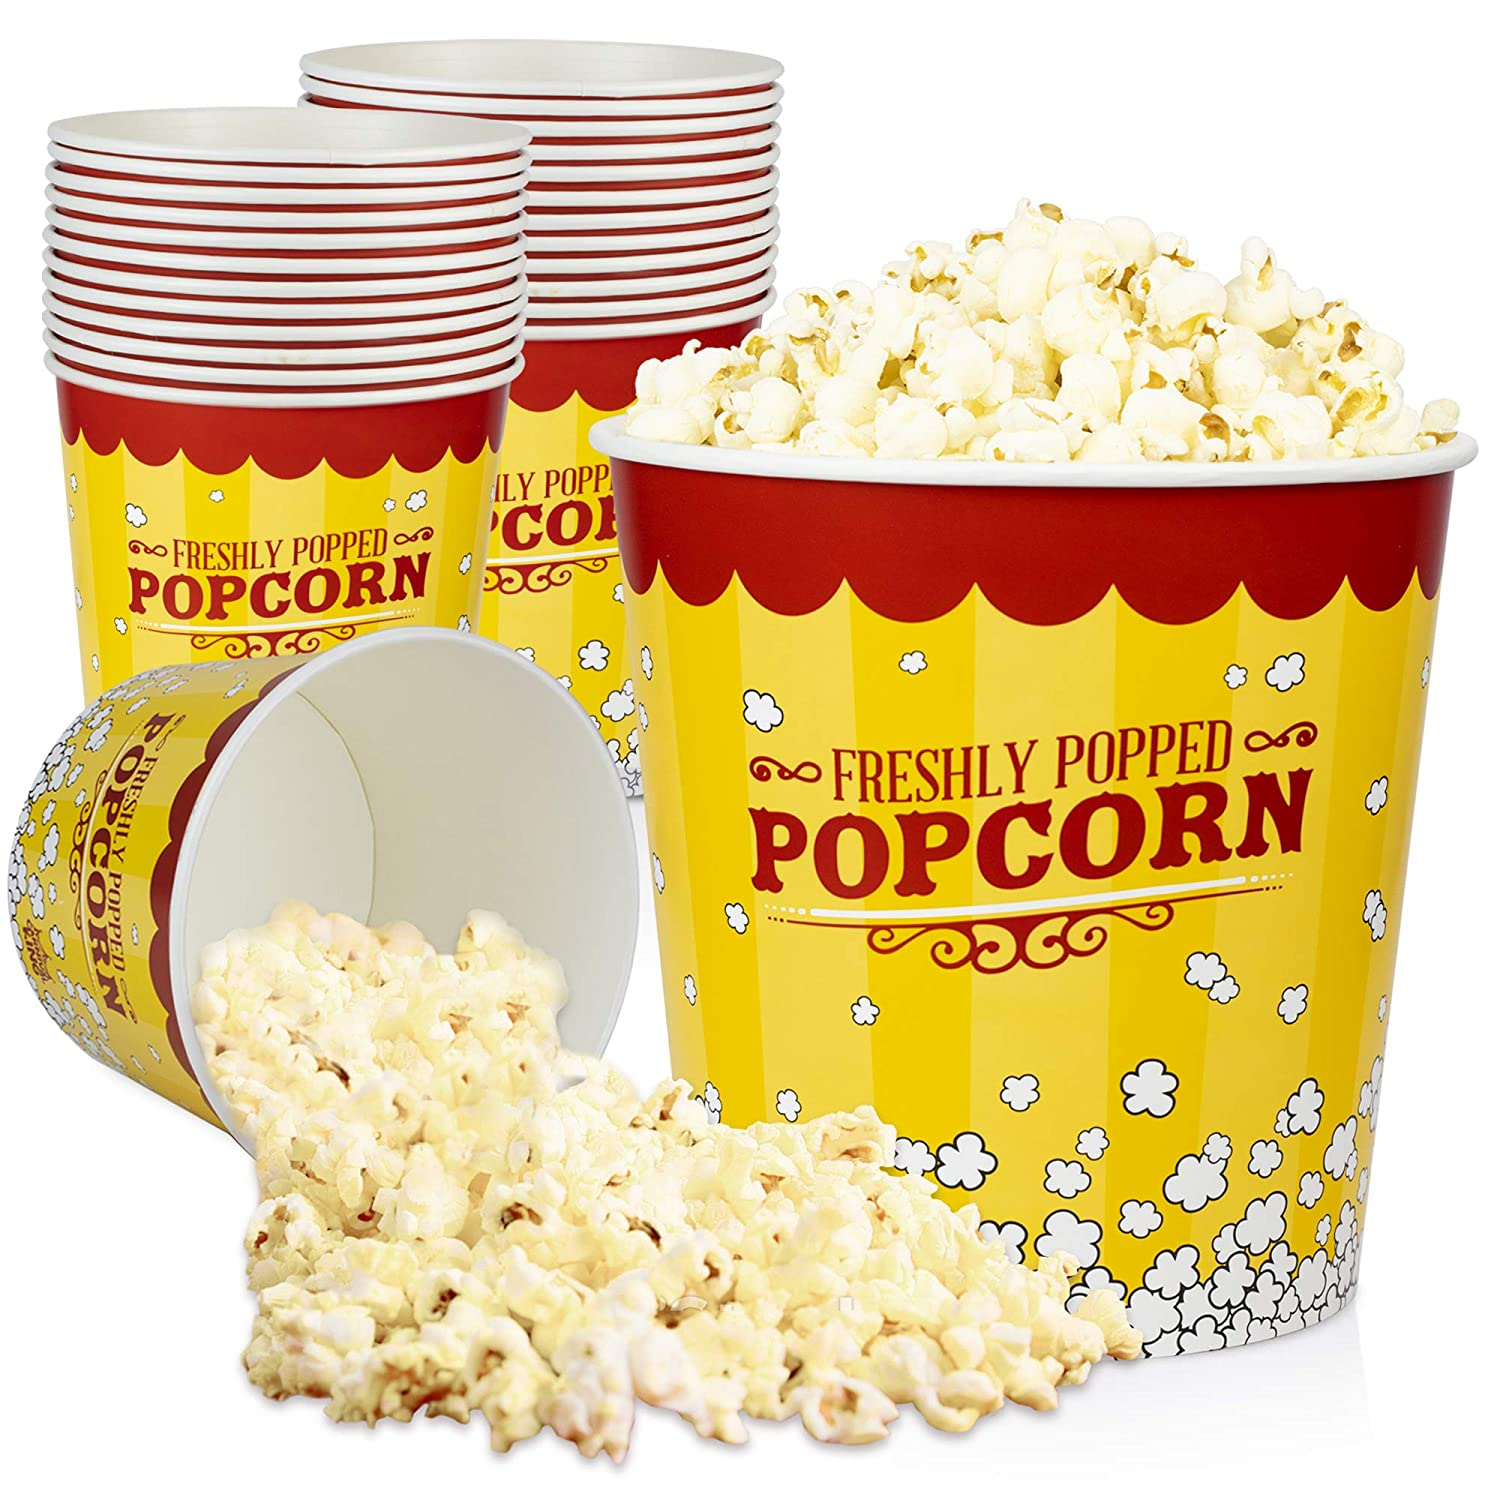 [25 Pack] Popcorn Buckets Disposable - 130 Oz Yellow and Red Paper Popcorn Containers - Solo Popcorn Tubs for Home and Theater Movie Night - Popcorn Cups for Circus, Carnival Theme Party Decorations